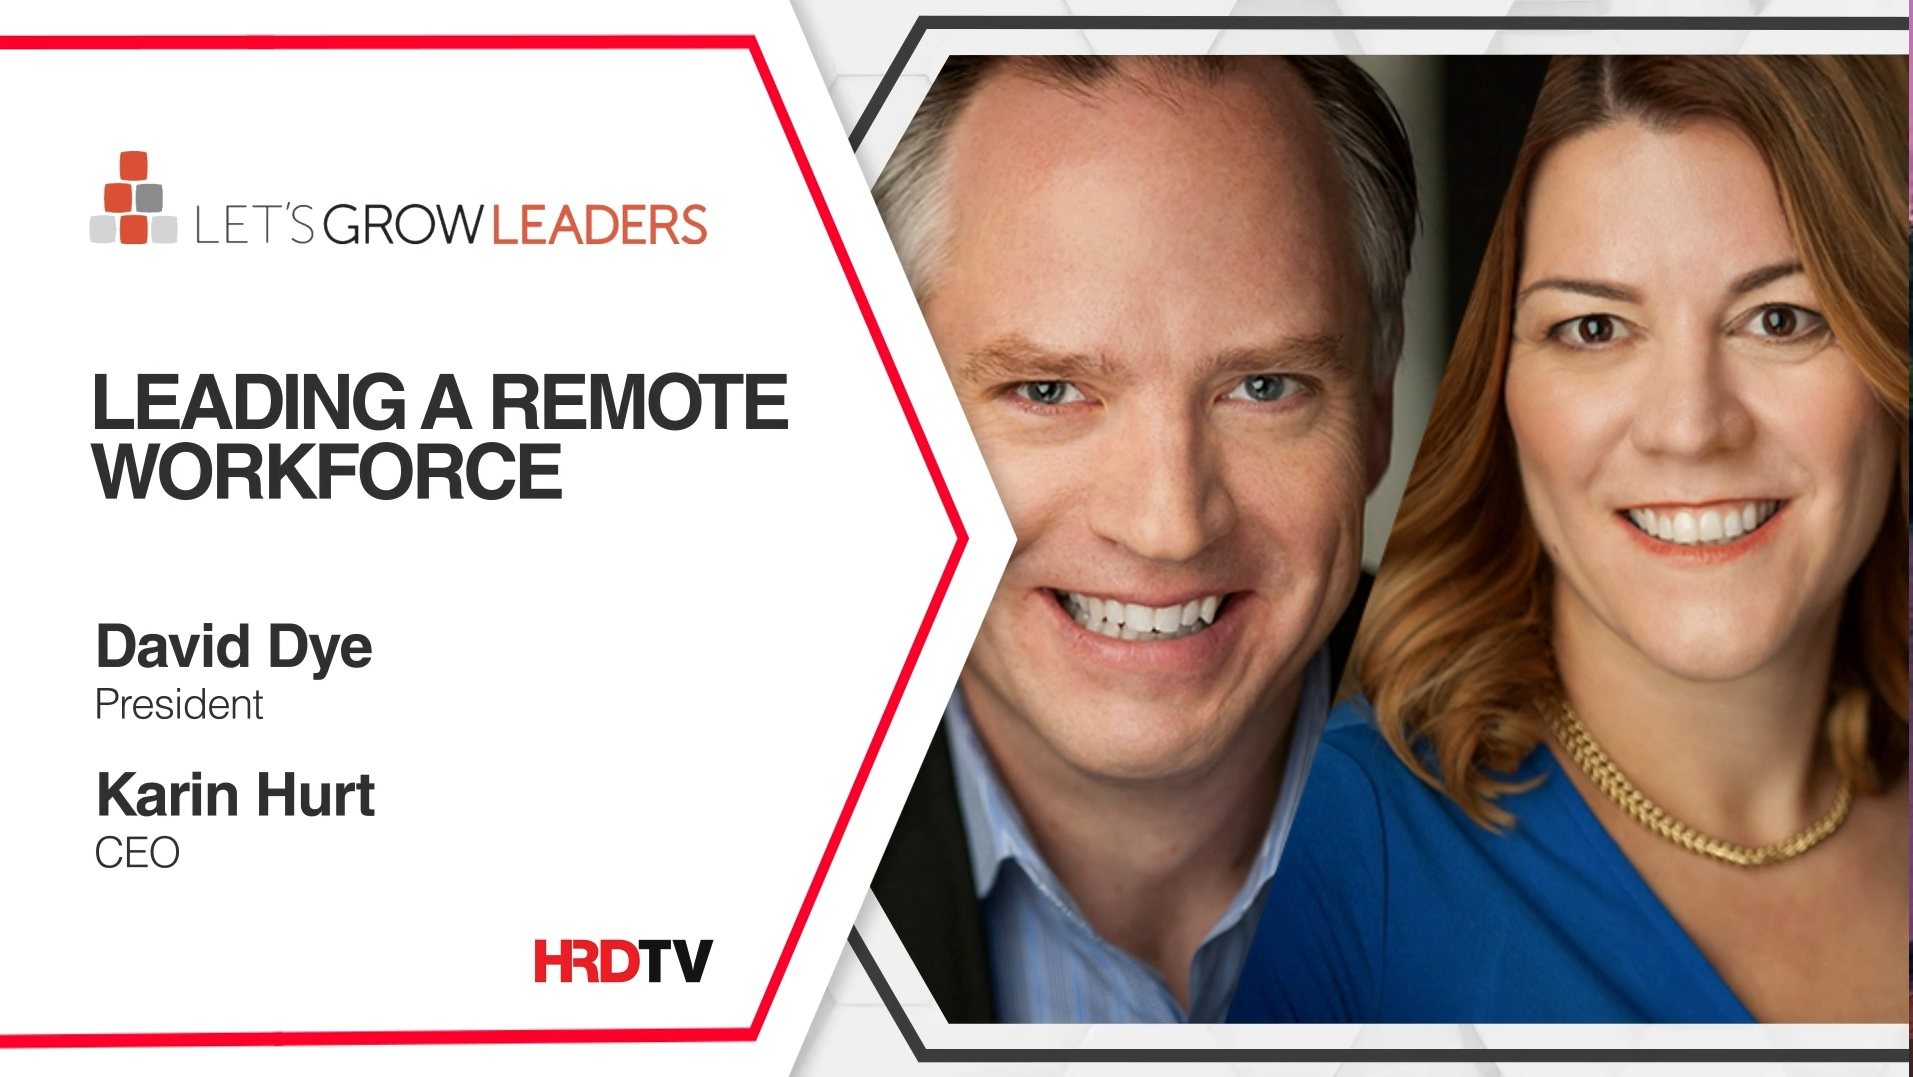 How has remote working changed the way leaders lead?